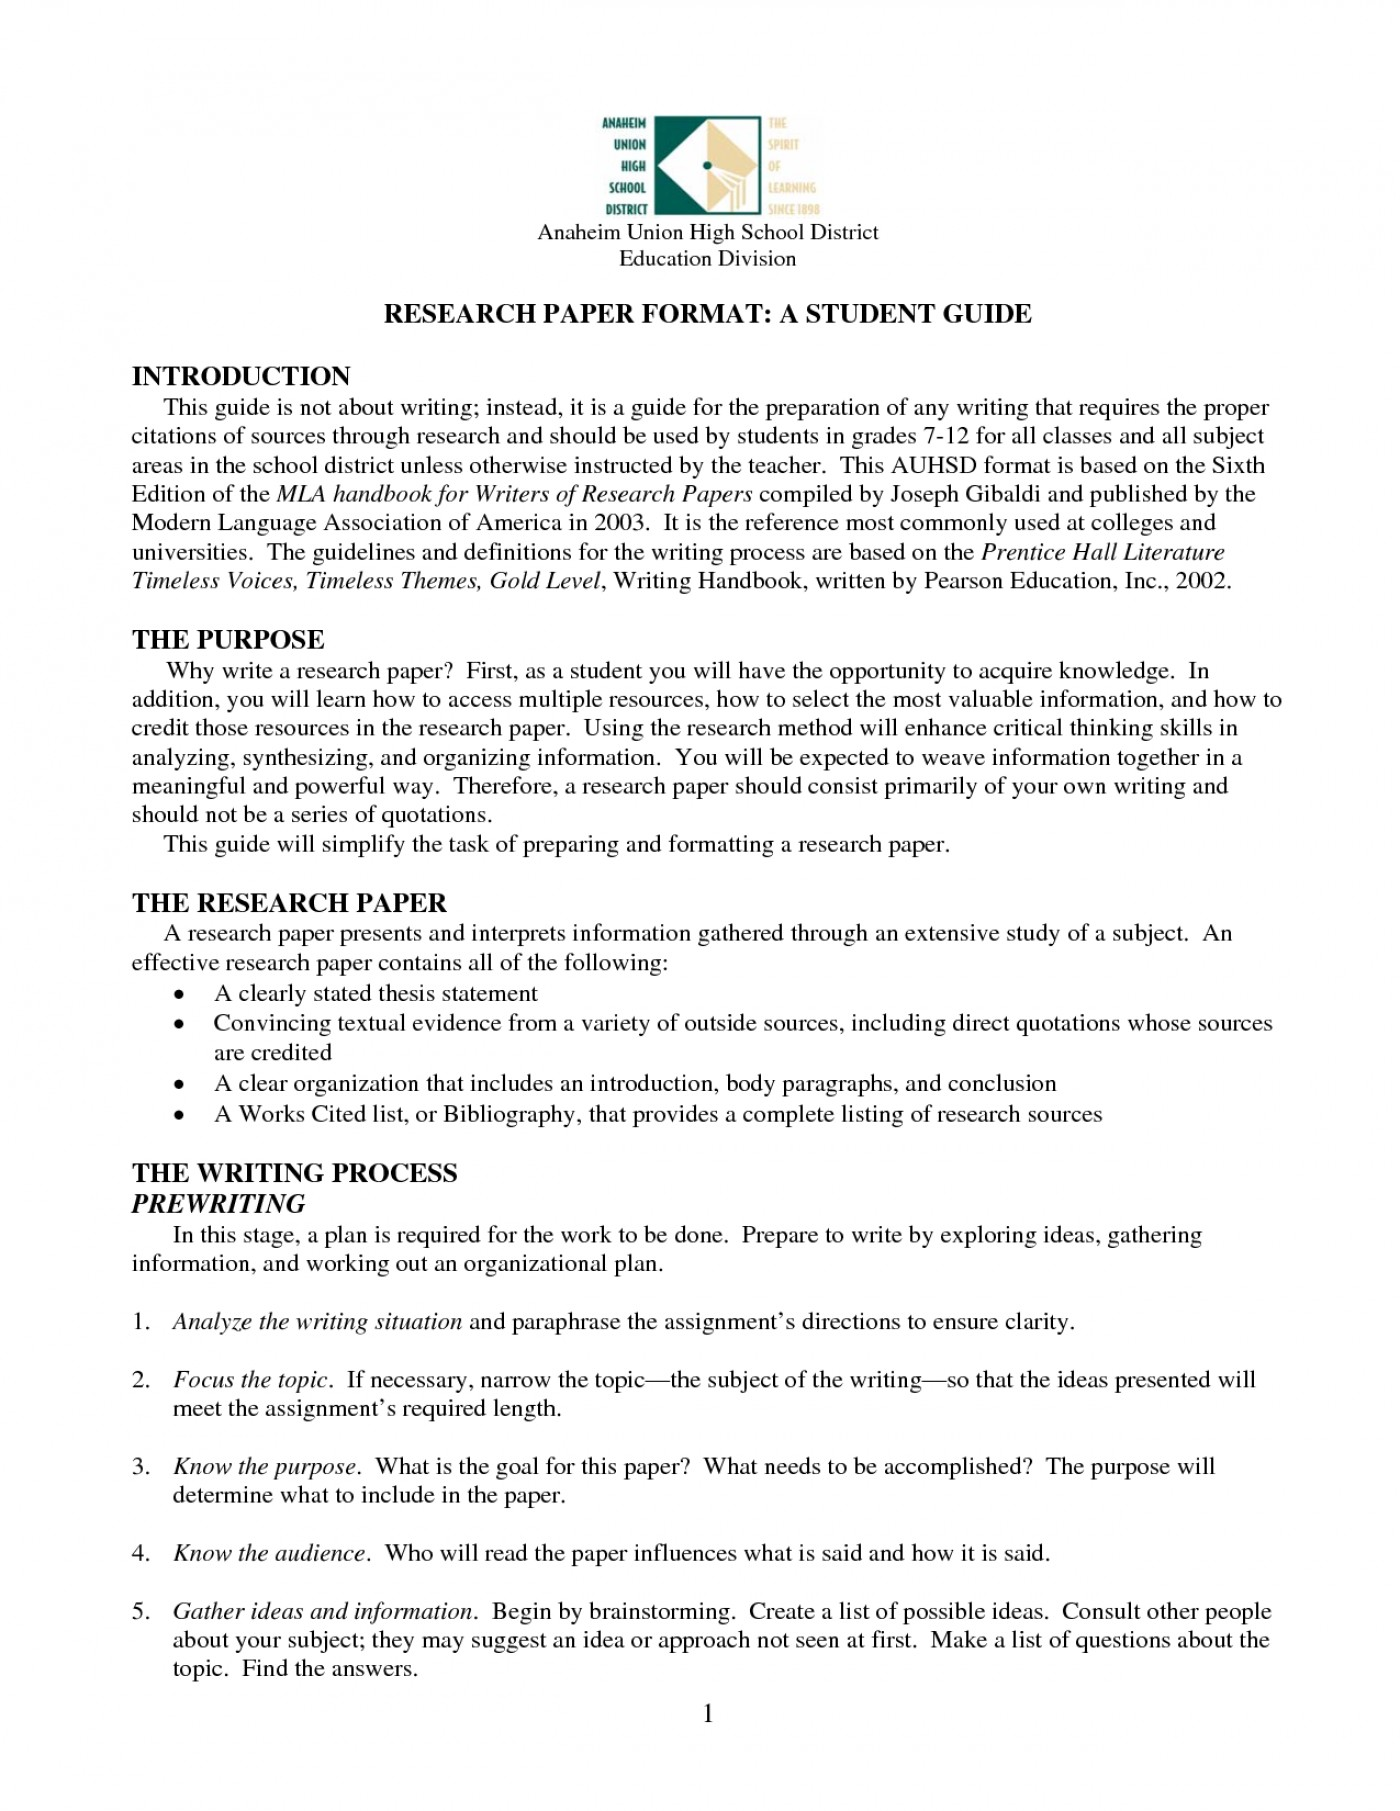 Abstract research paper example